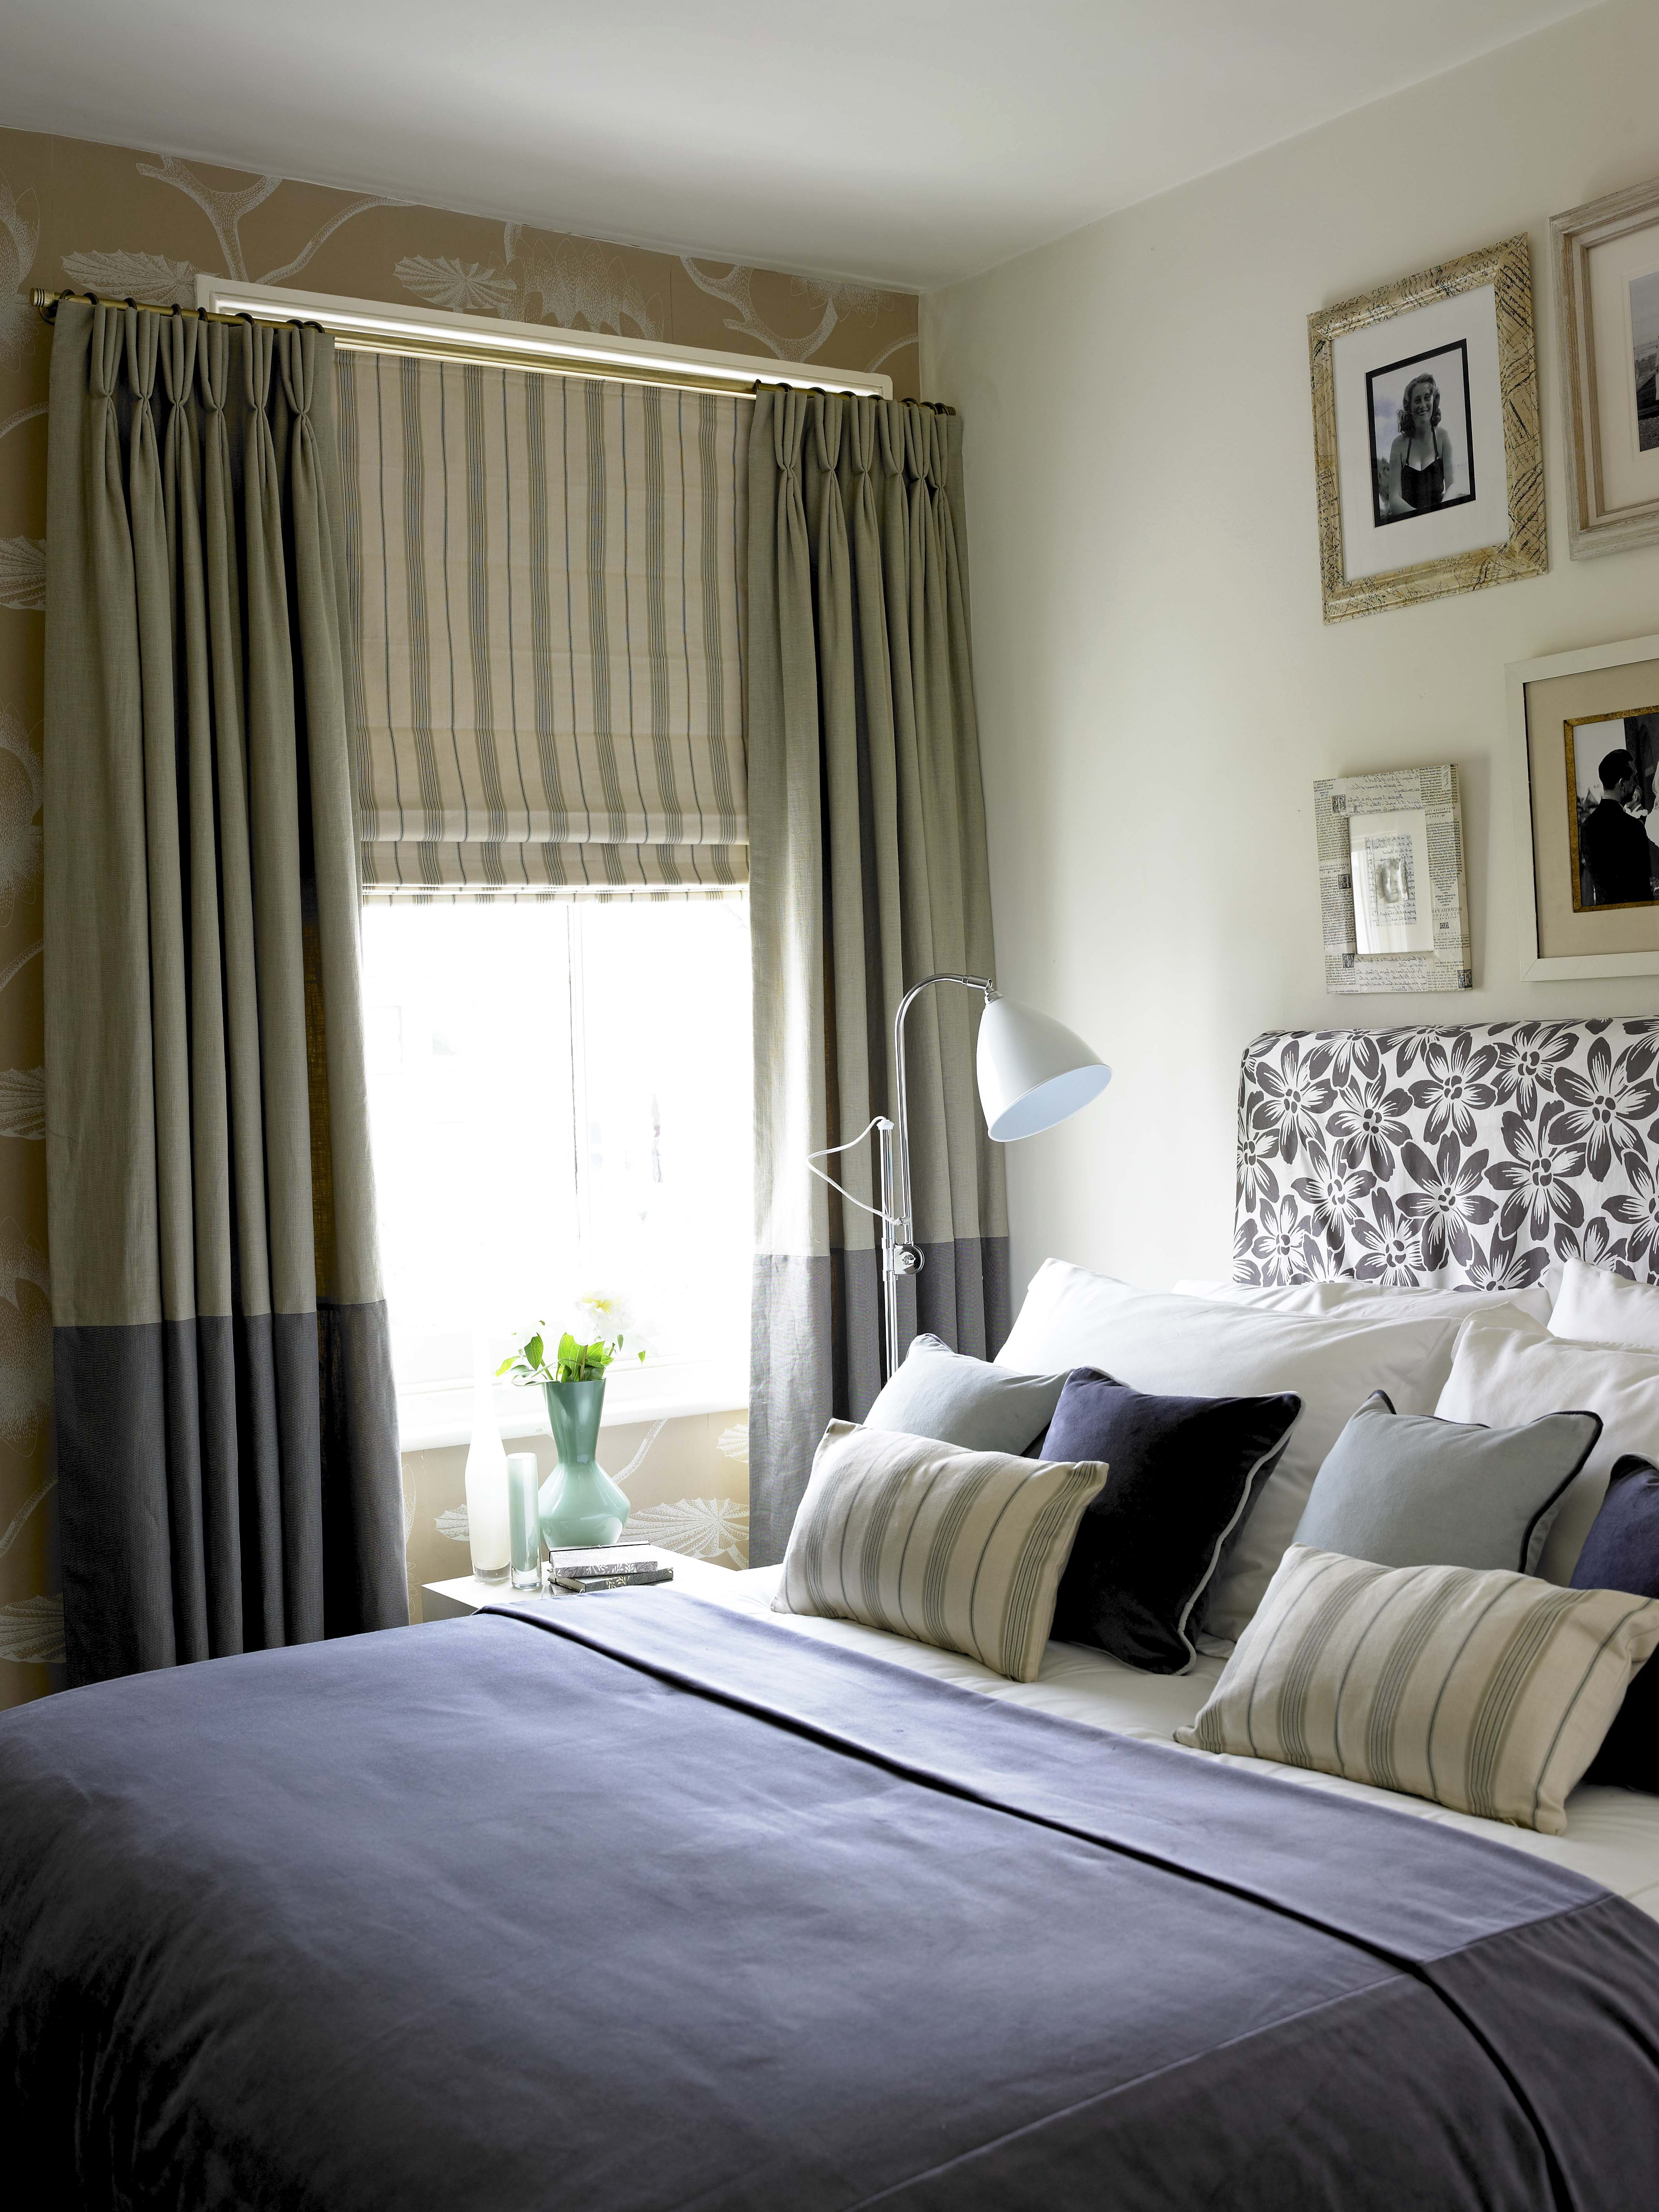 Ideas For Curtains And Blinds Home Design Ideas